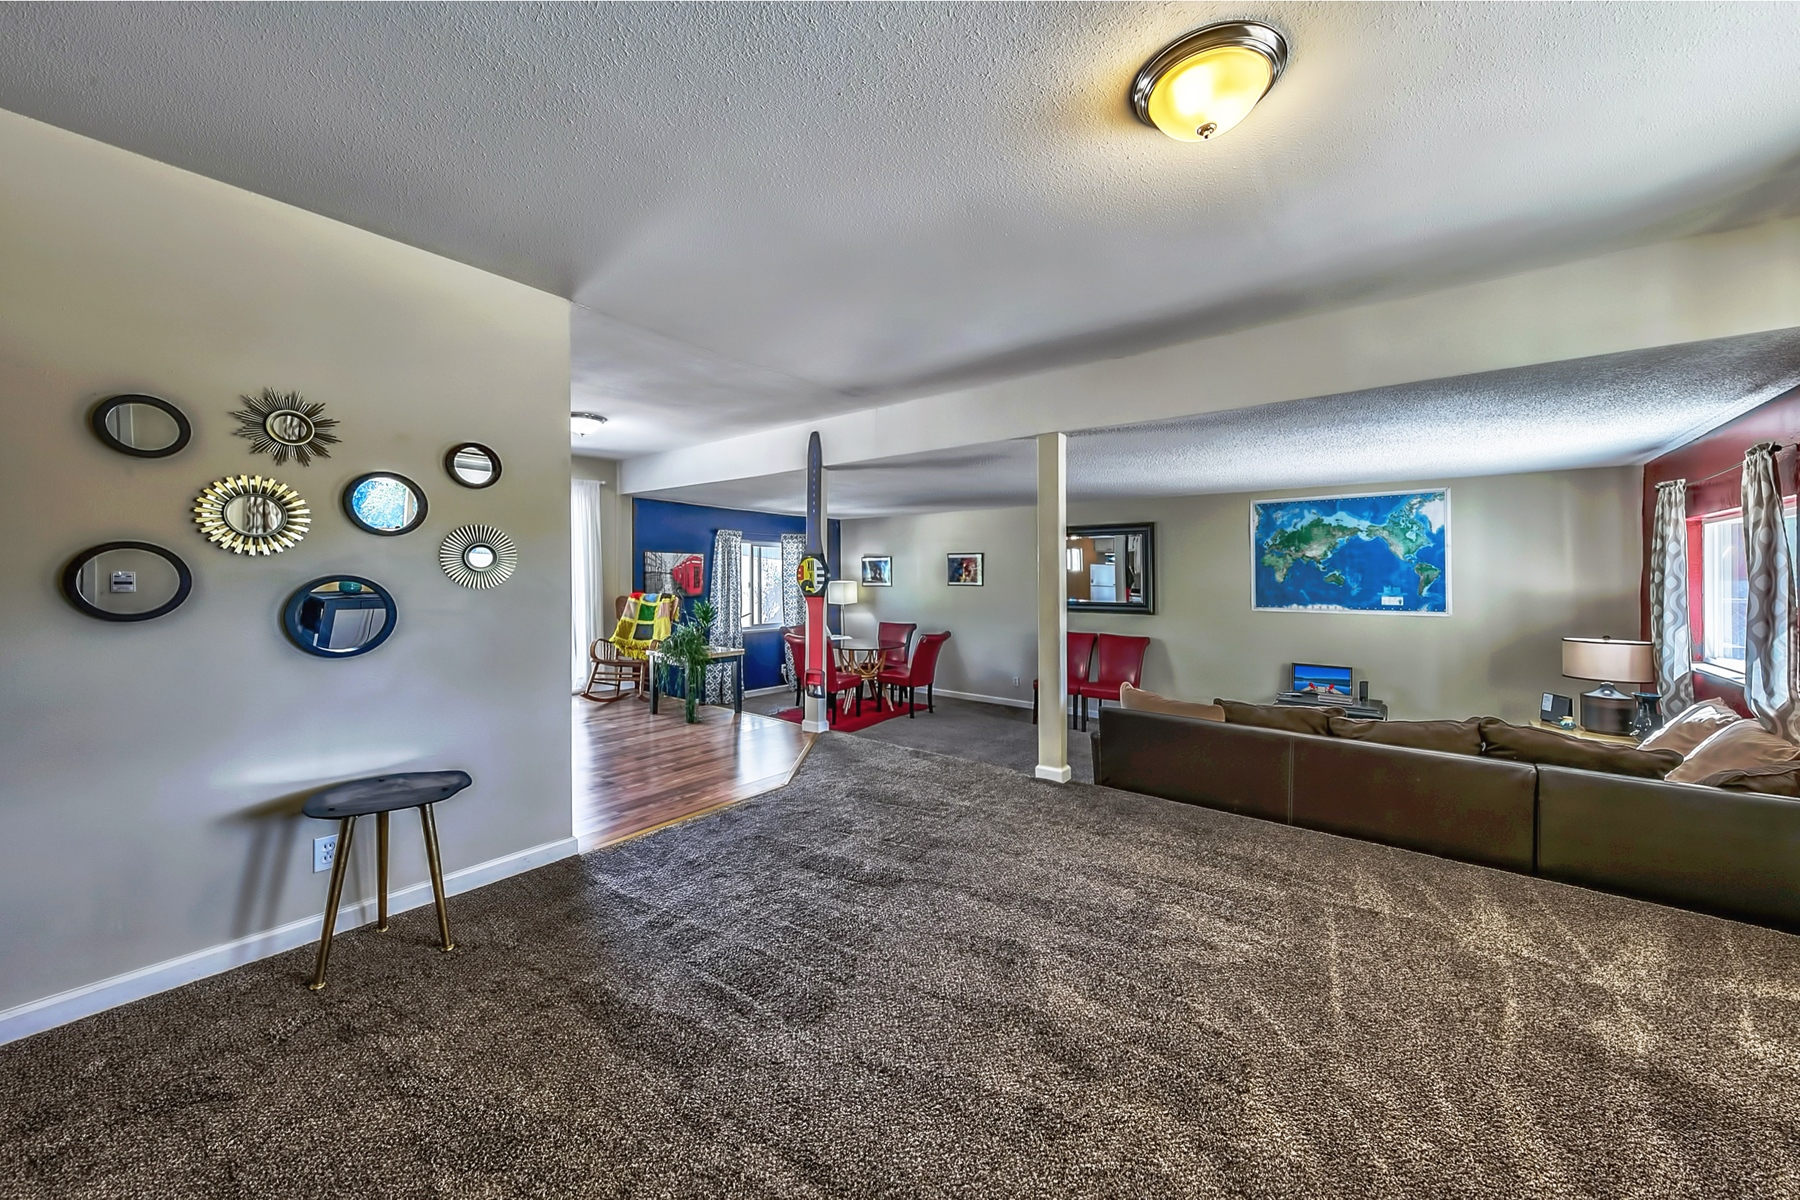 Property for Active at 3135 Heights Drive, Reno, Nevada 89503 3135 Heights Drive Reno, Nevada 89503 United States